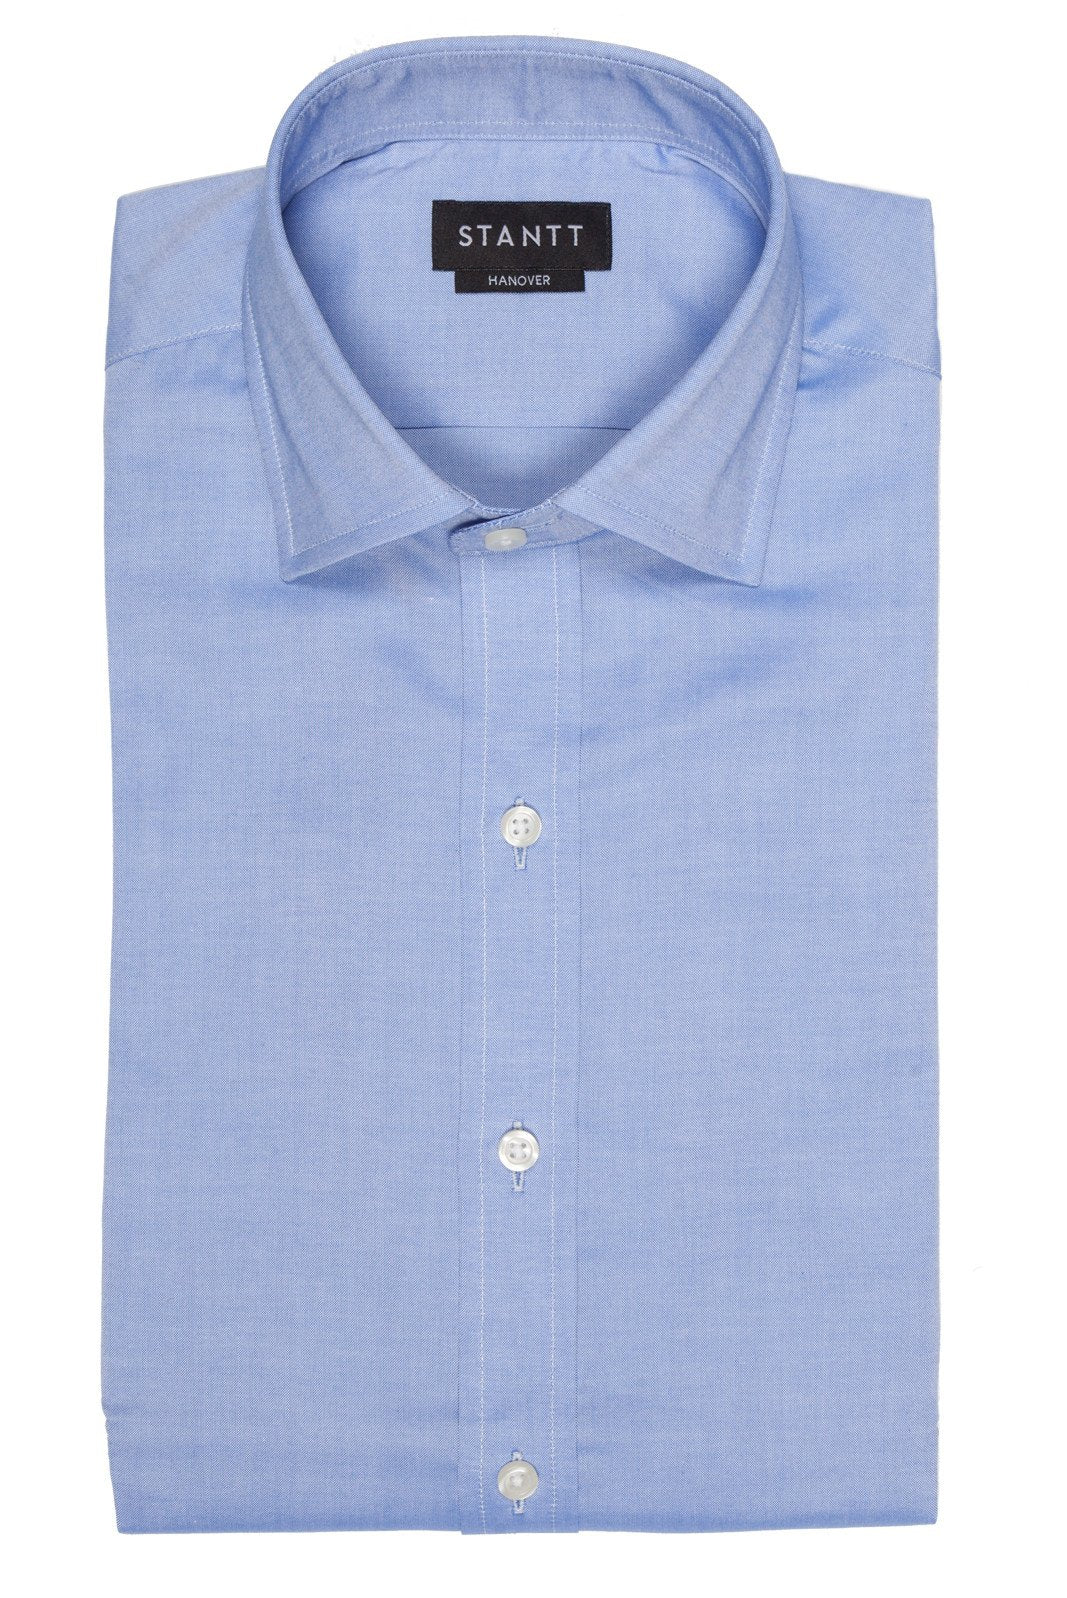 Blue Pinpoint Oxford: Modified-Spread Collar, French Cuff